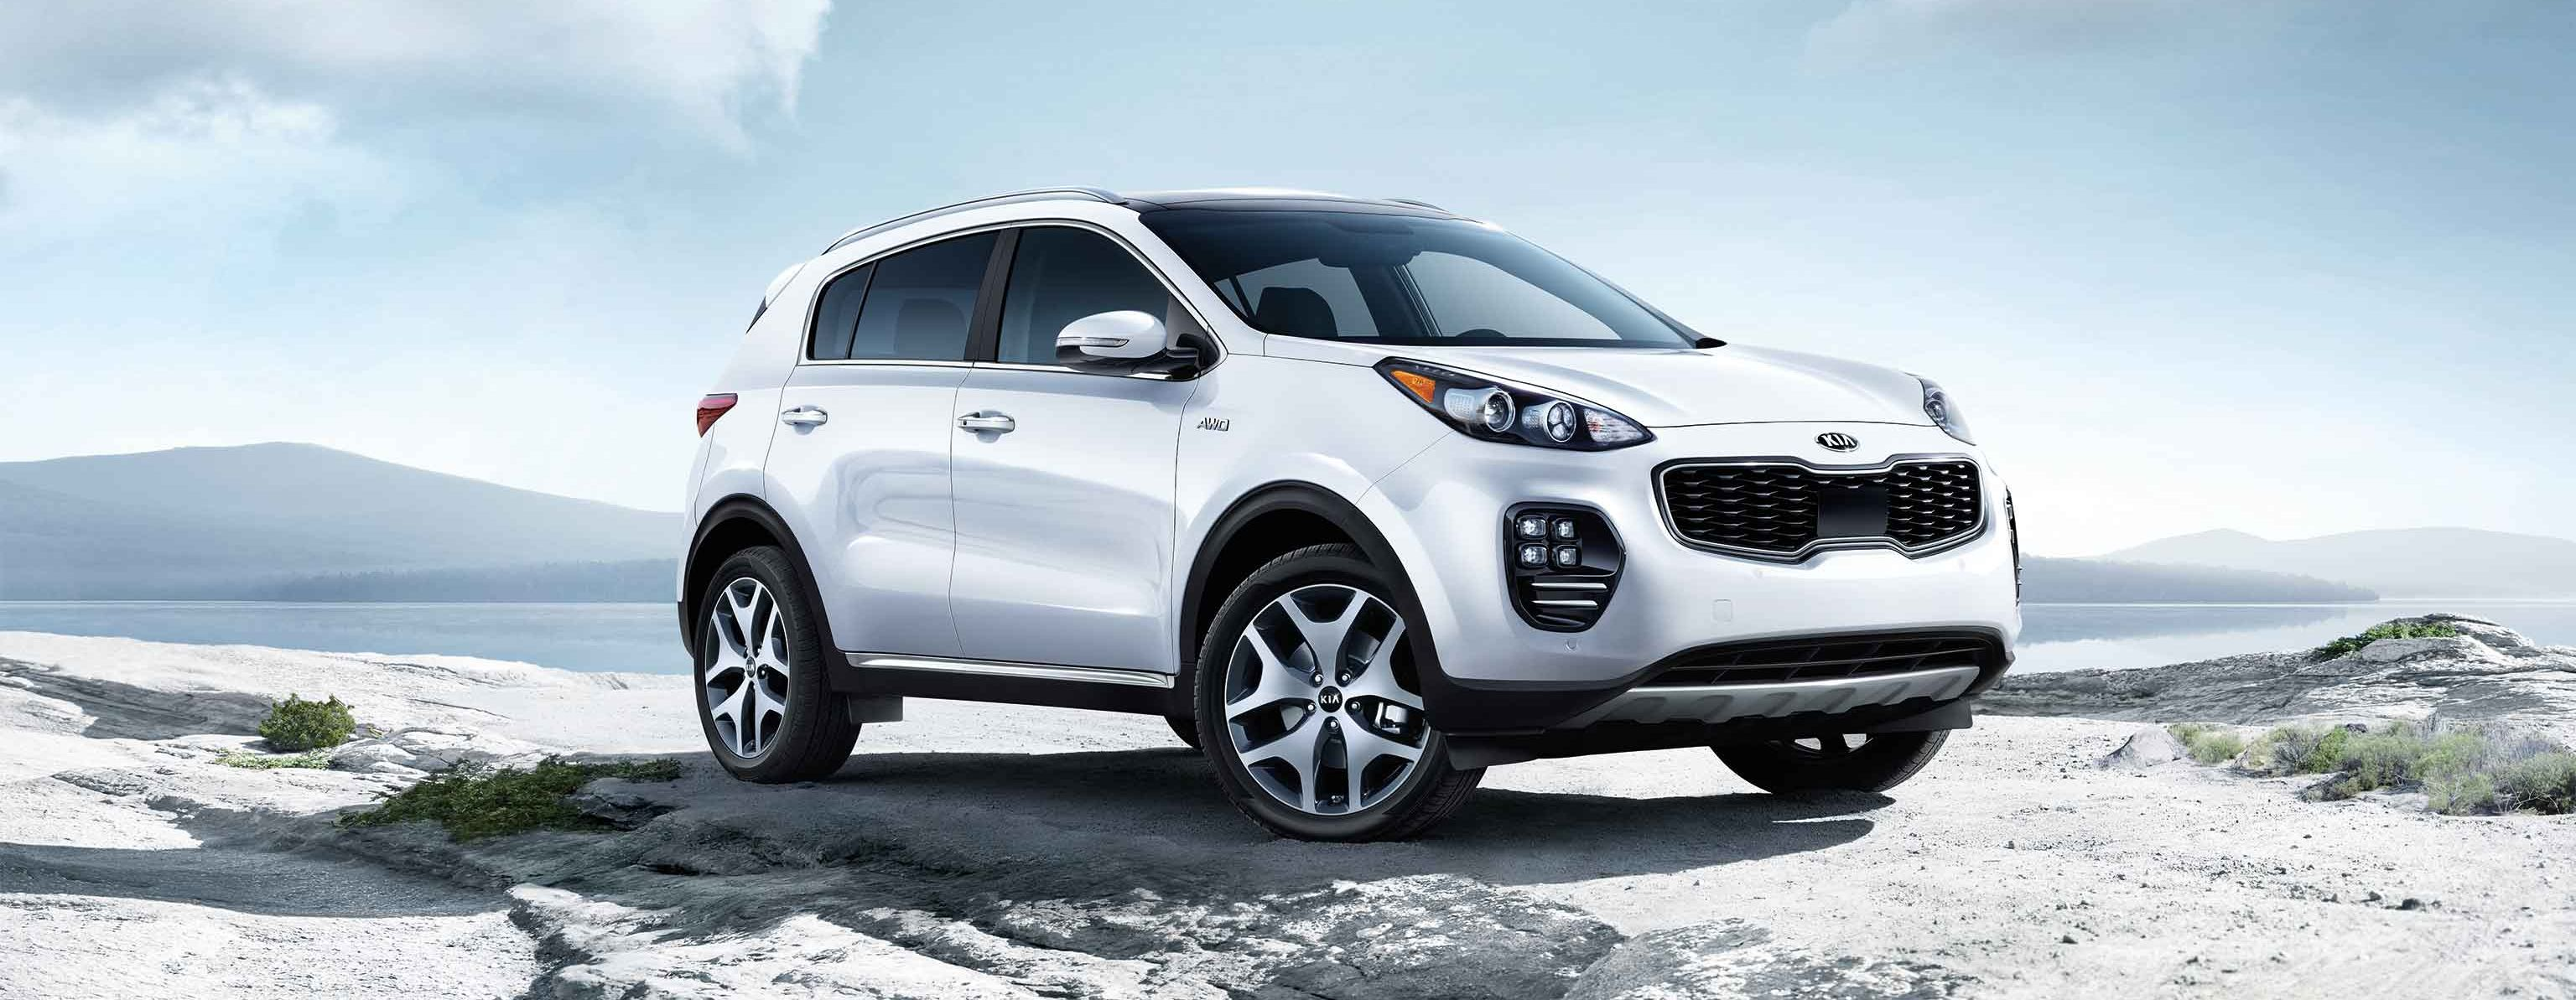 2017 kia sportage for lease near tulsa ok boomer kia. Black Bedroom Furniture Sets. Home Design Ideas